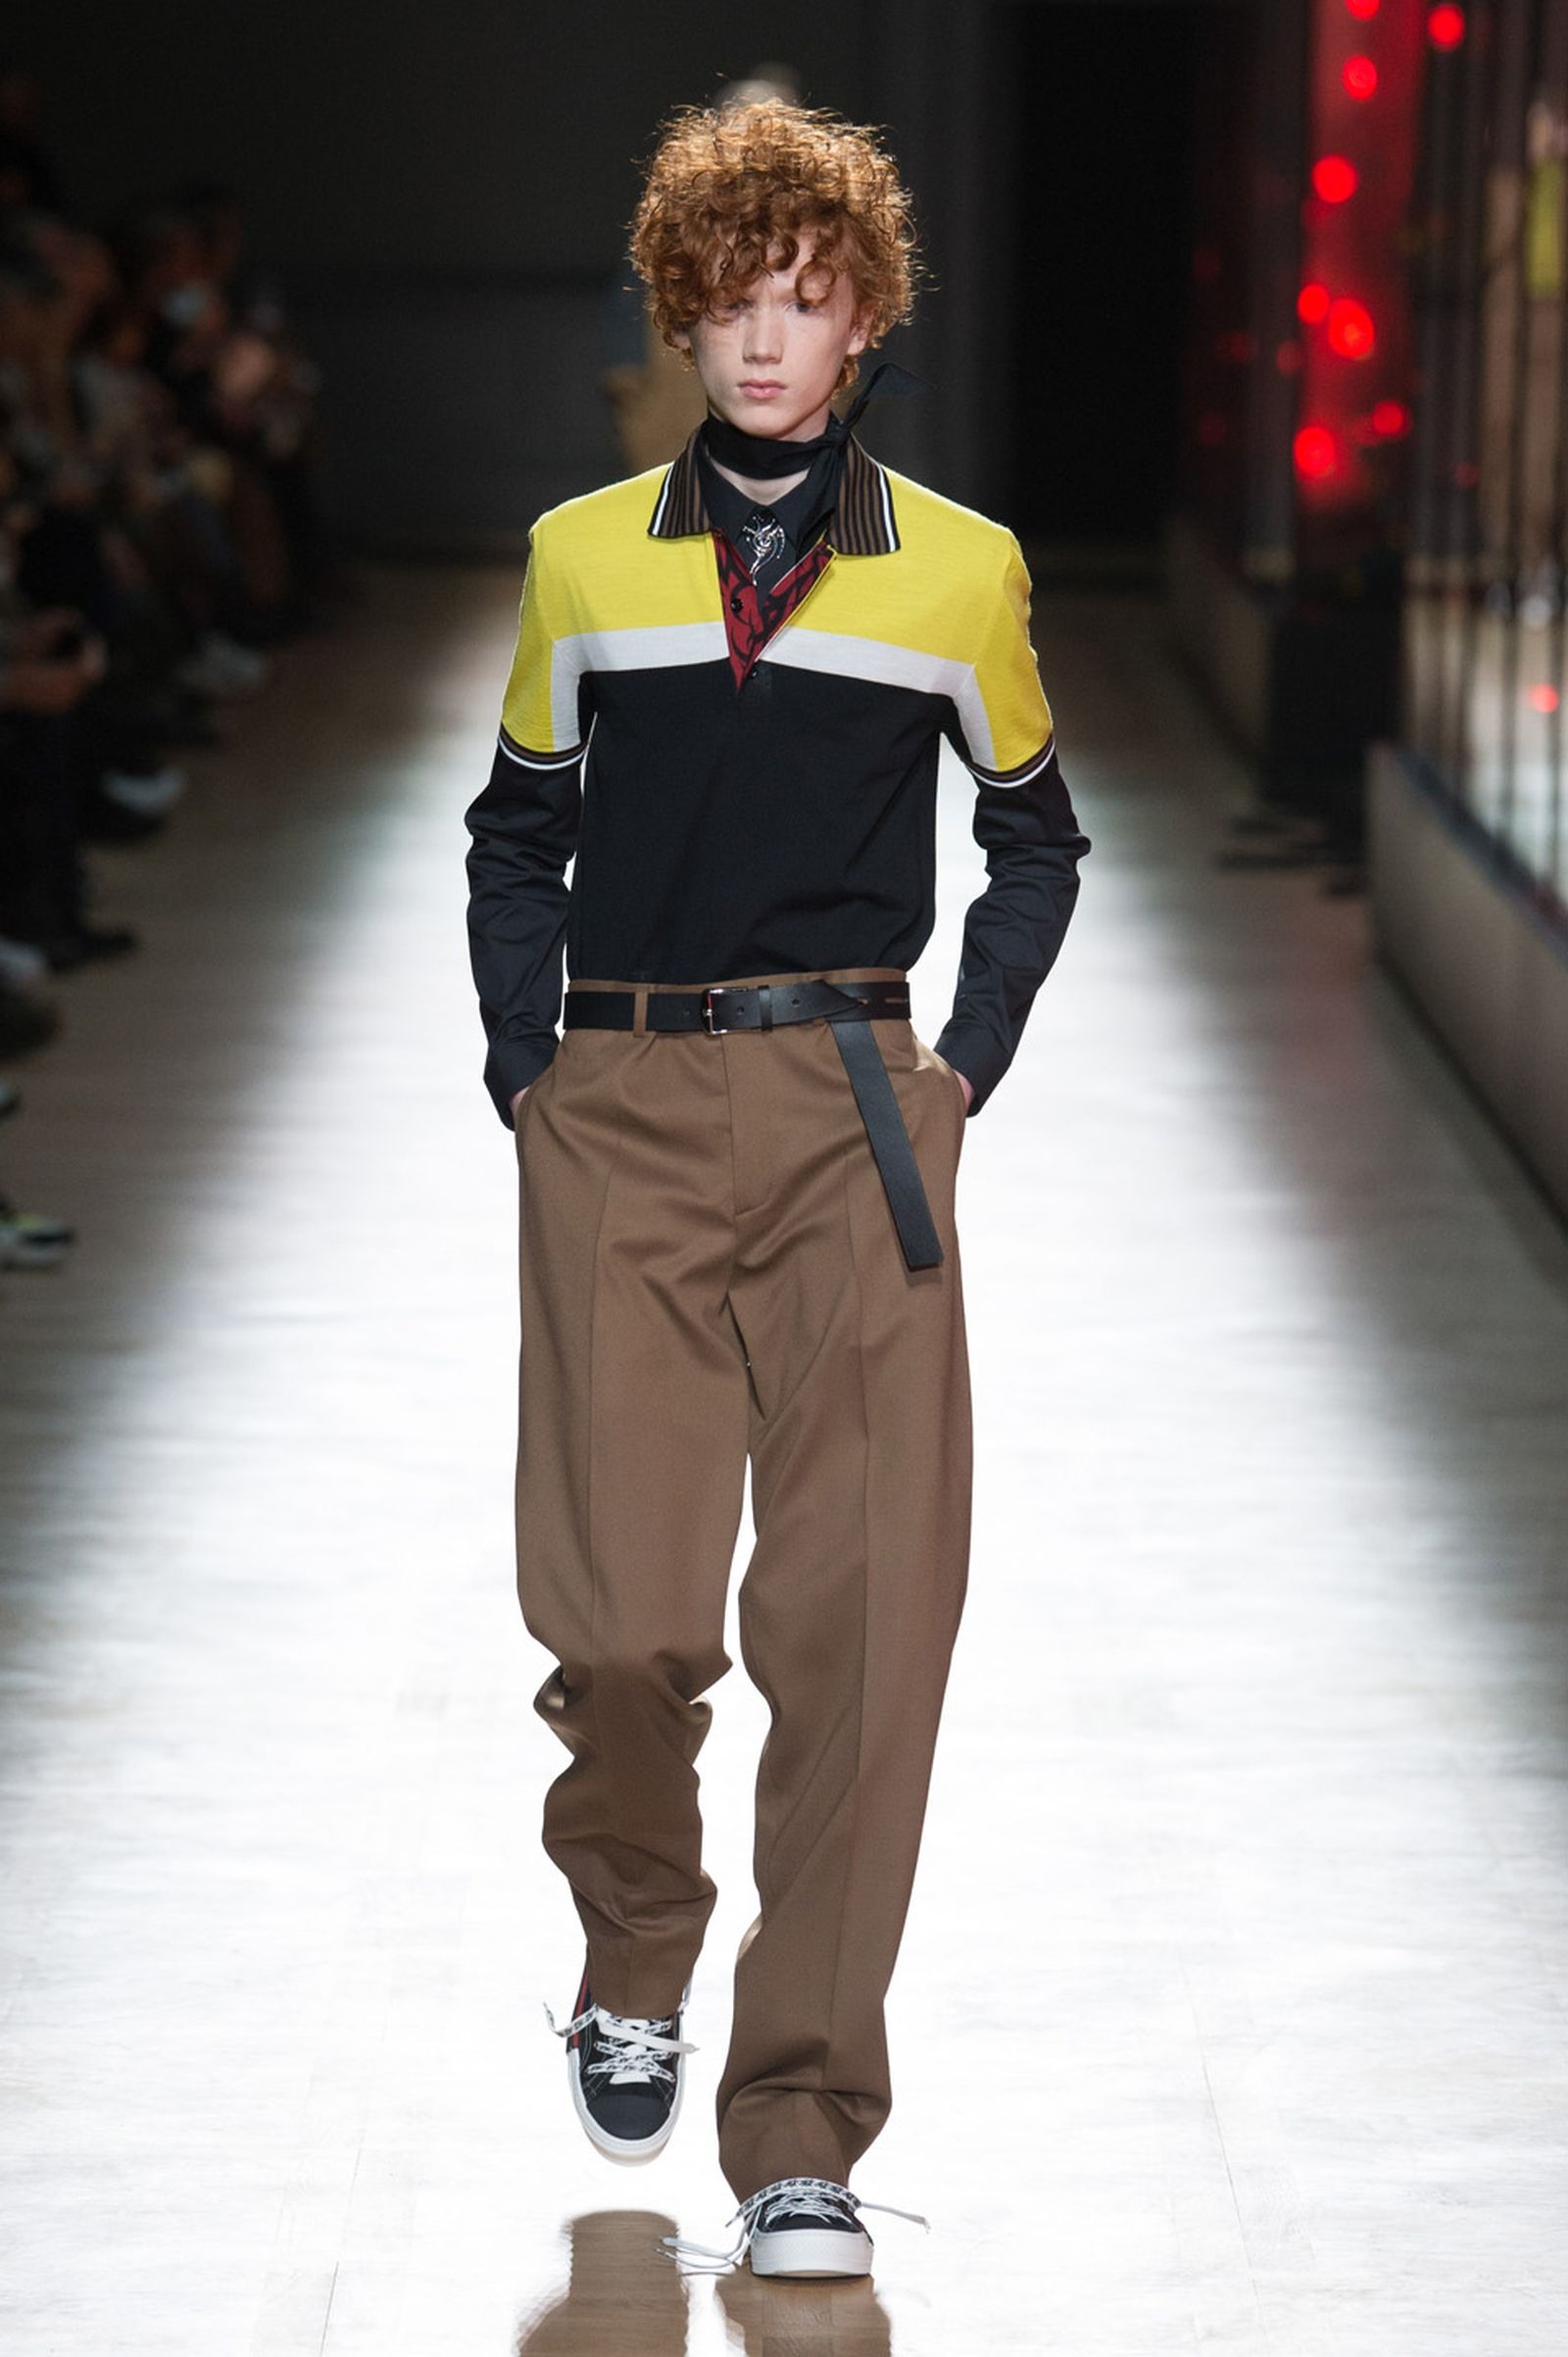 DIOR HOMME WINTER 18 19 BY PATRICE STABLE look34 Fall/WInter 2018 runway